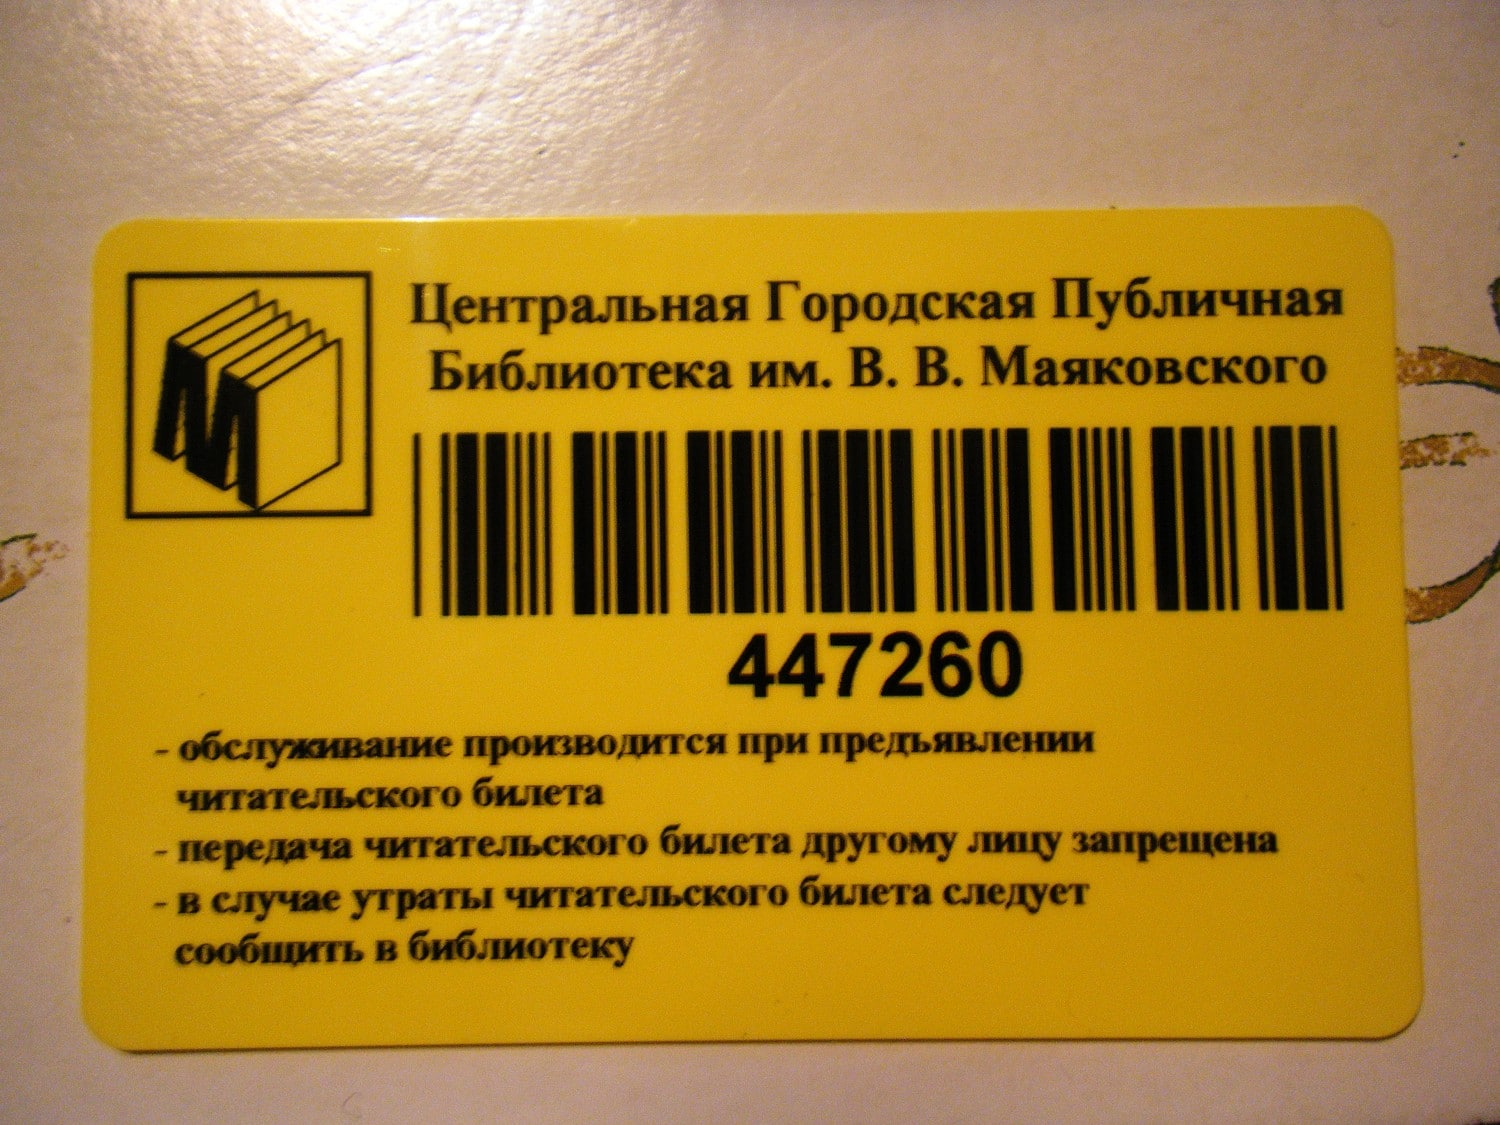 The Short-Term Library Card